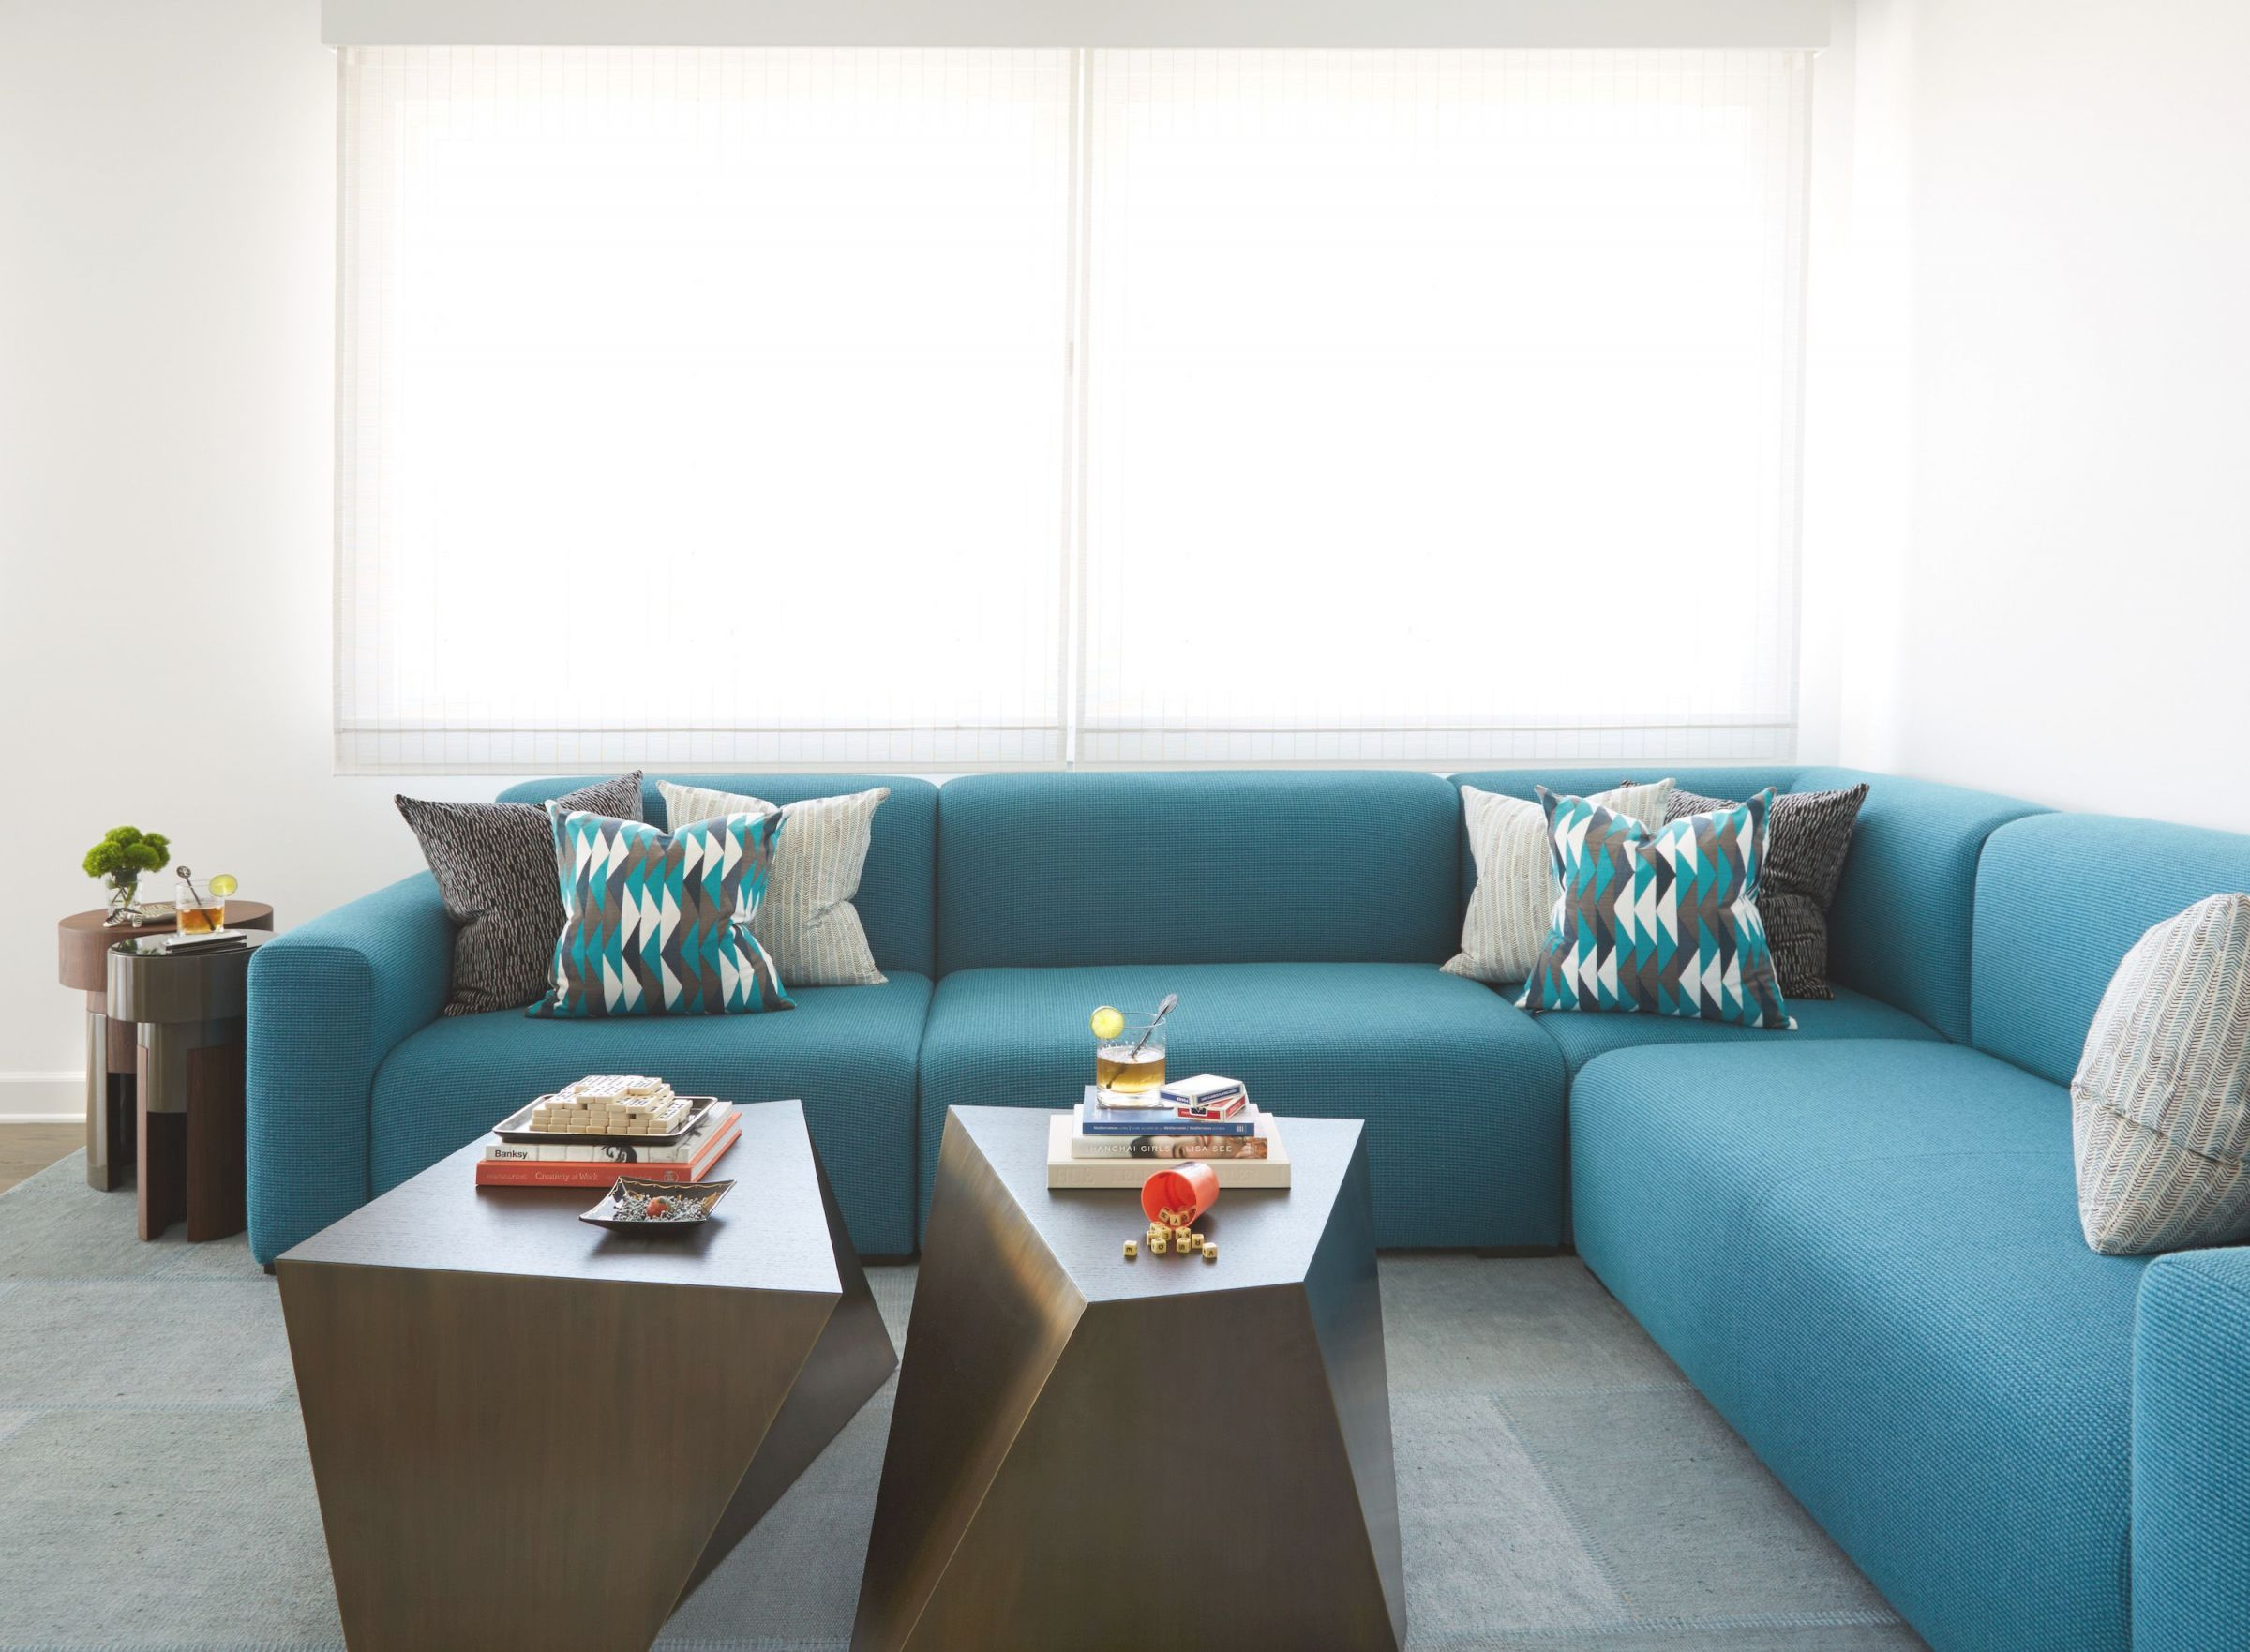 40 Sectional Sofas For Every Style Of Living Room Decor regarding Turquoise Living Room Furniture